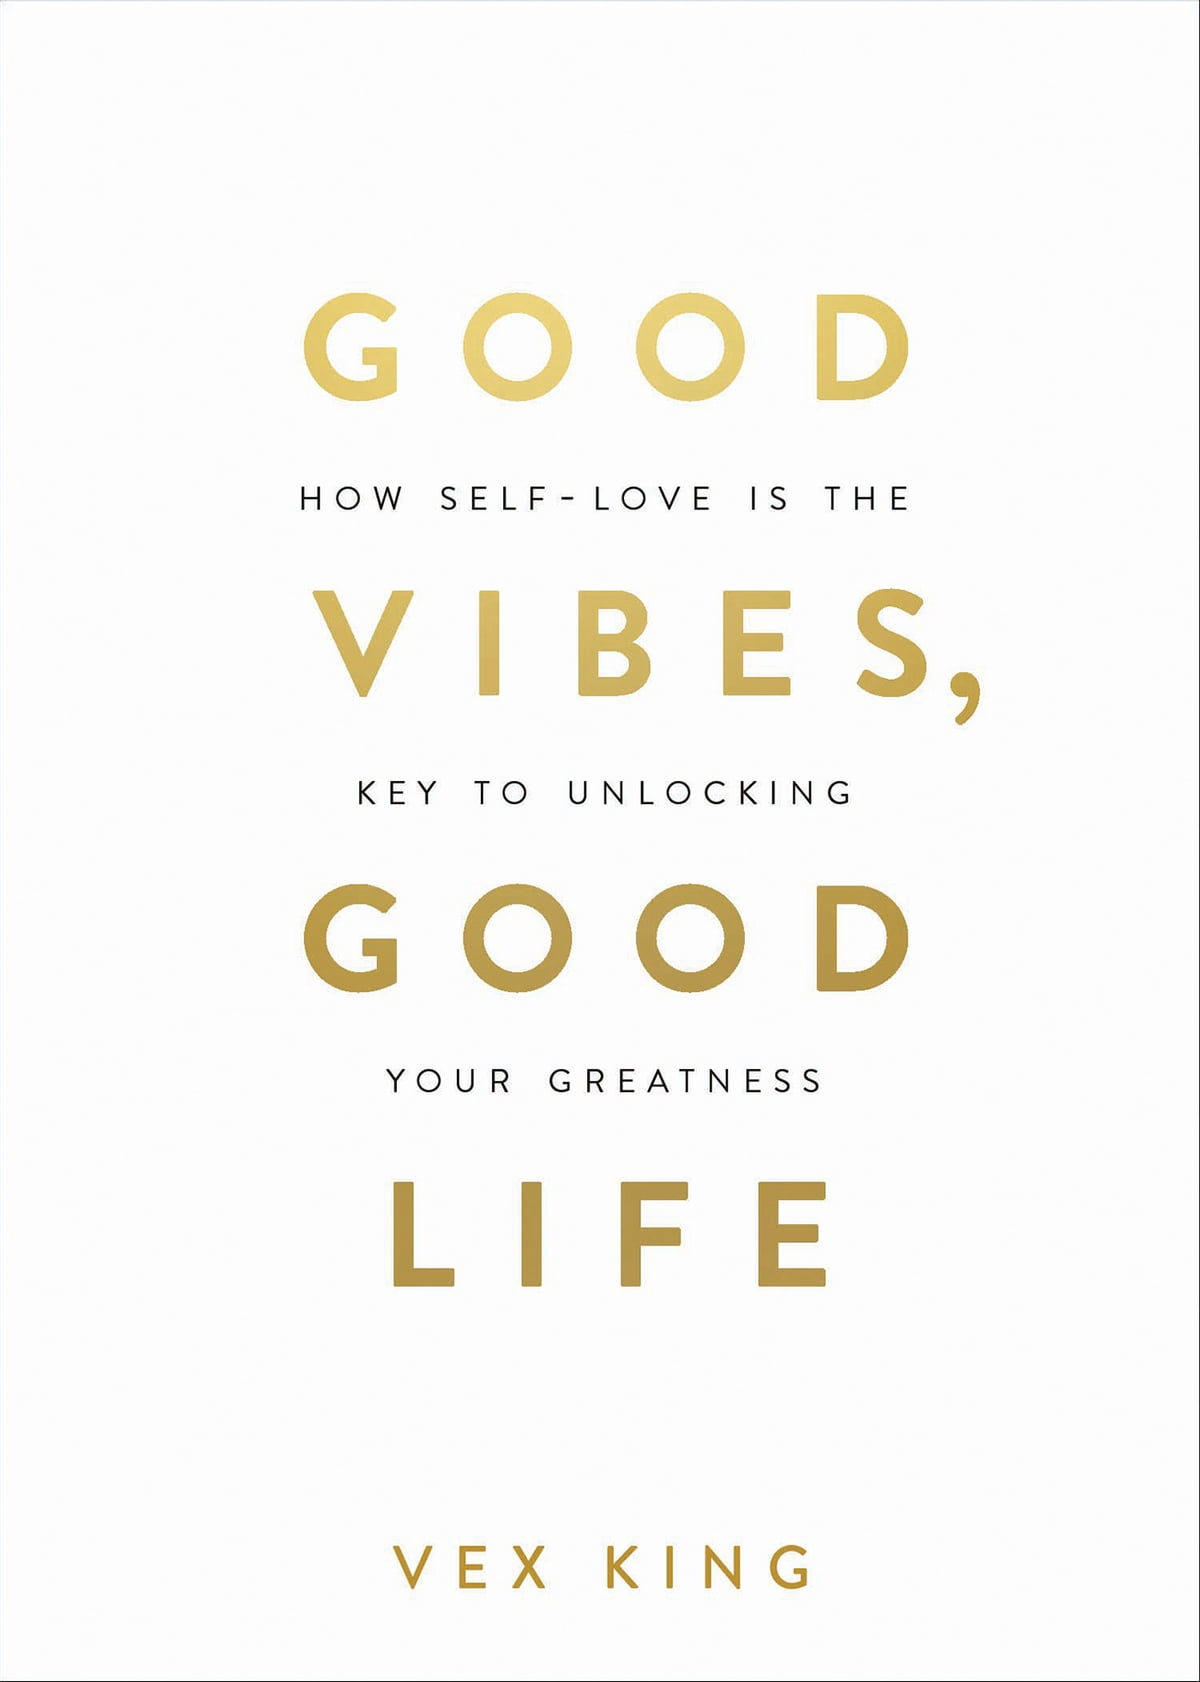 Good Vibes Good Life How Self Love Is The Key To Unlocking Your Greatness By Vex King